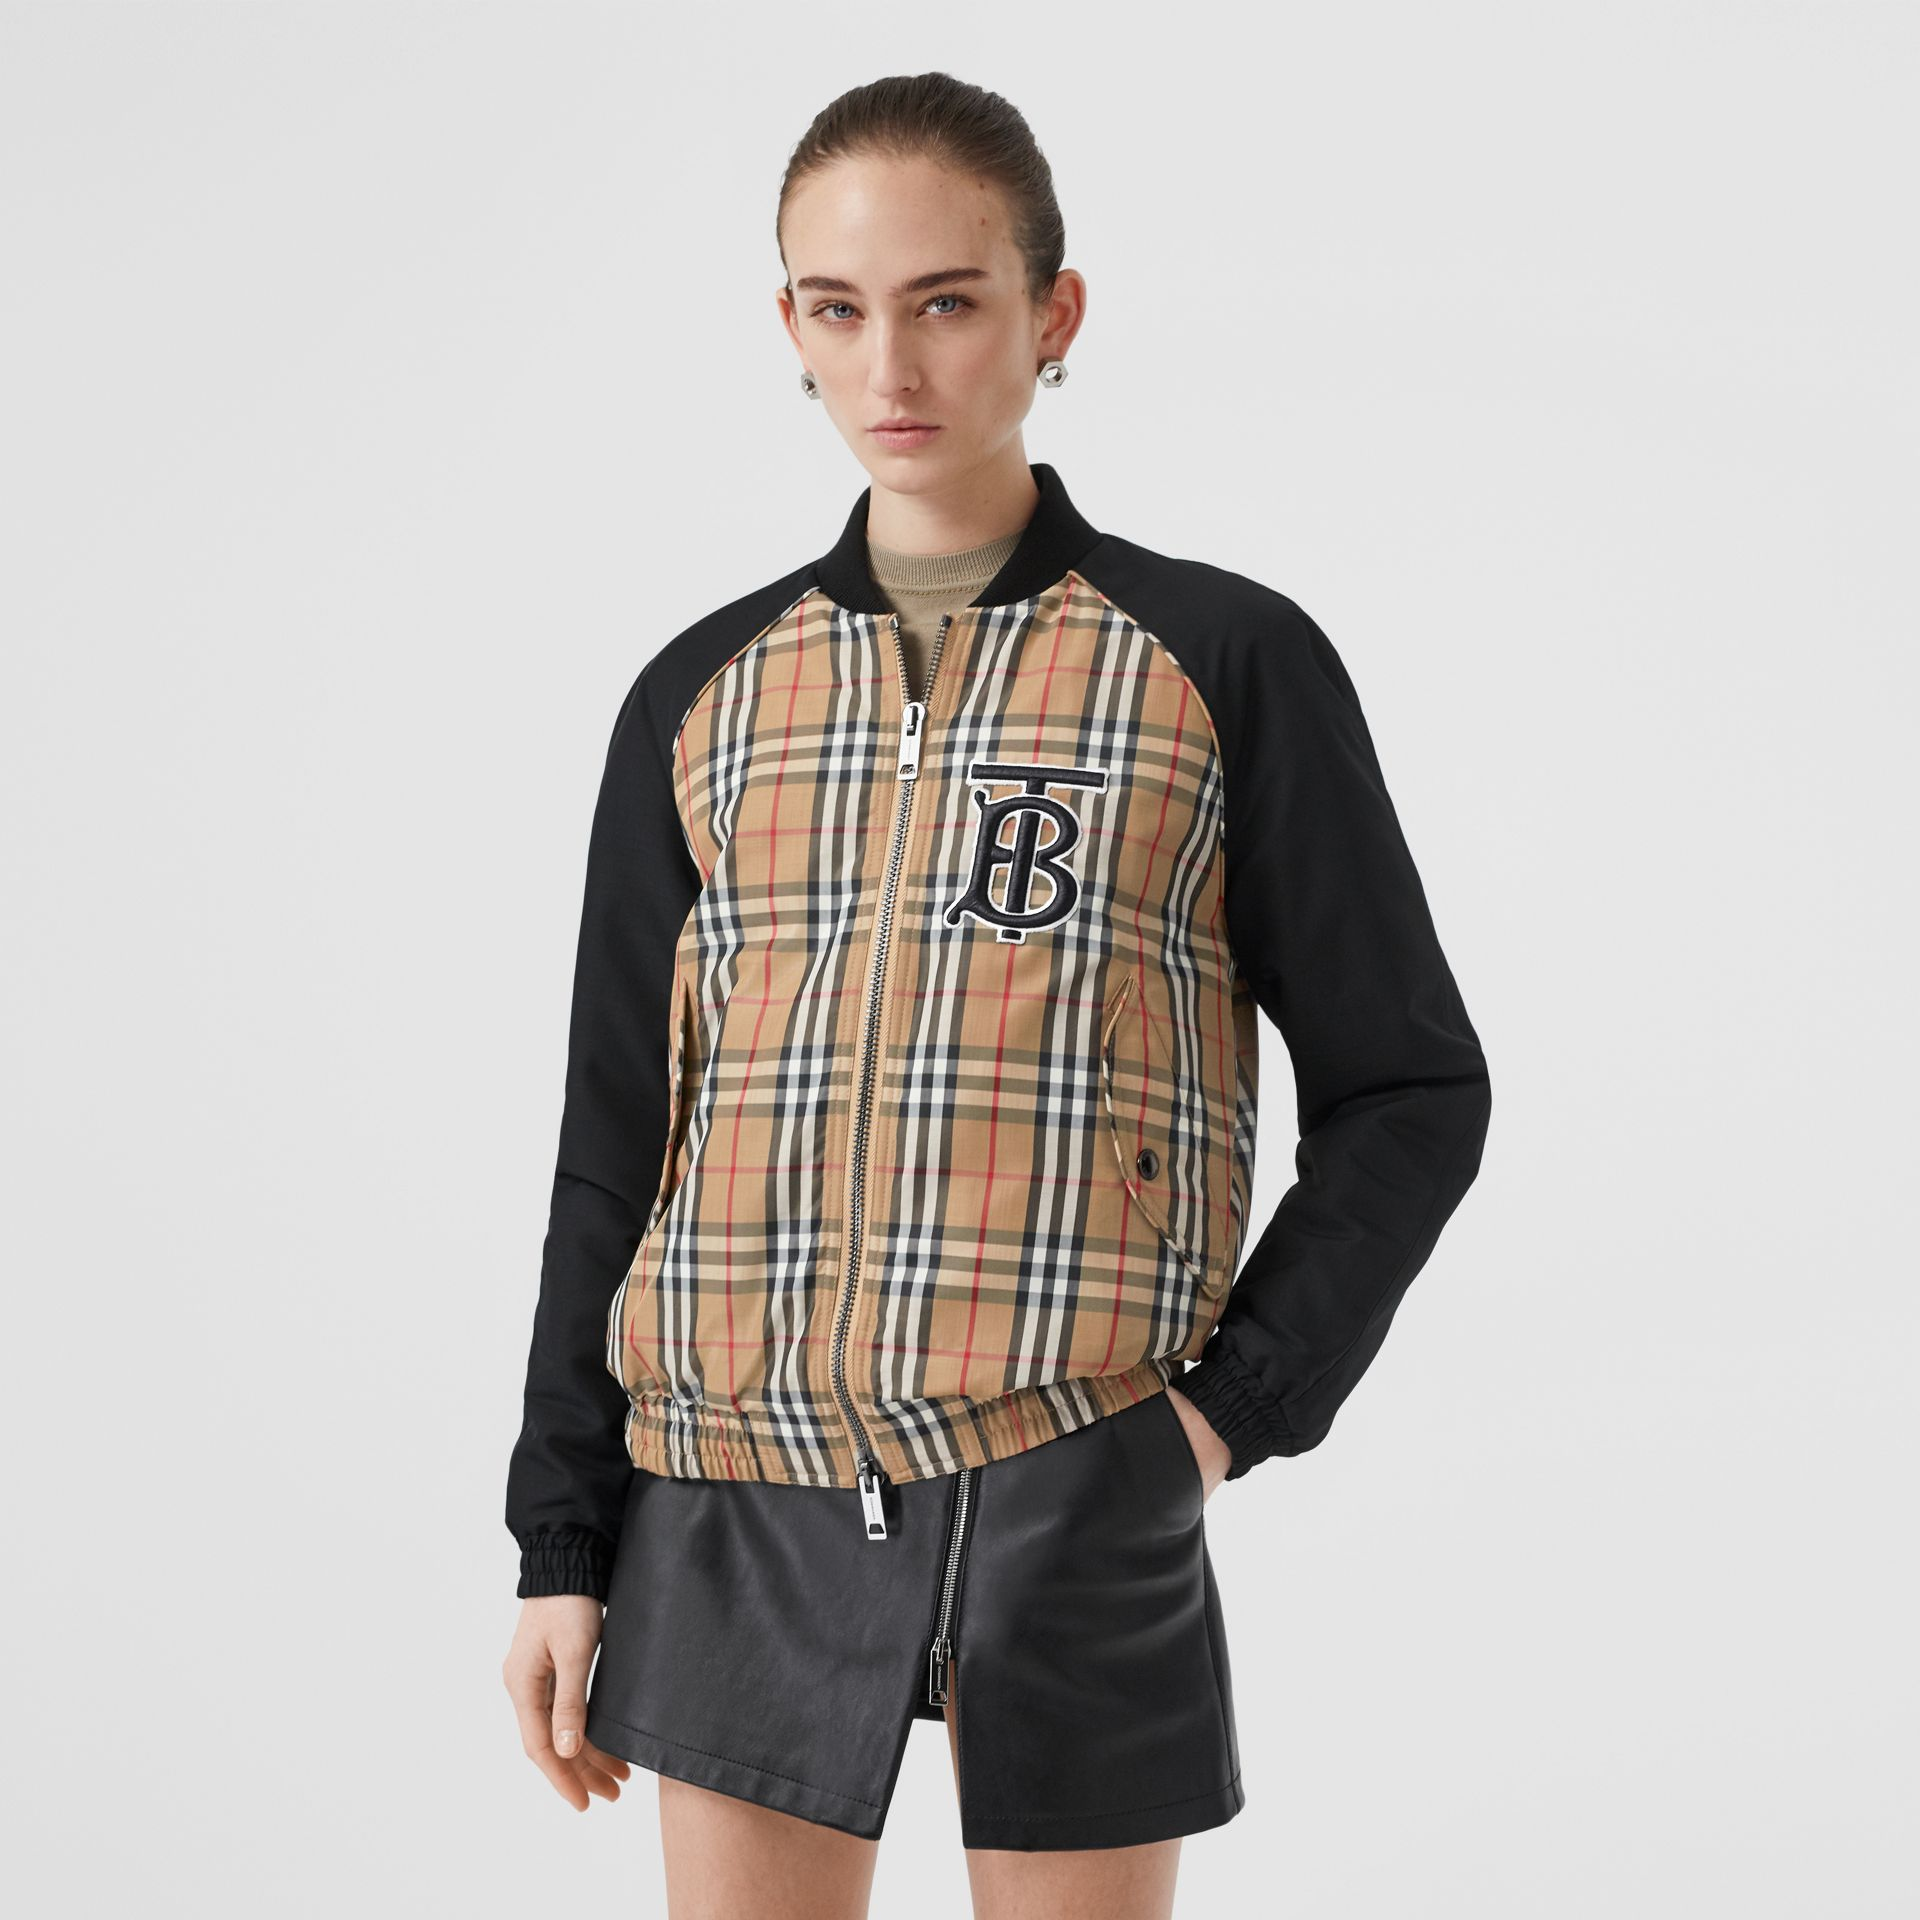 Monogram Motif Vintage Check Bomber Jacket in Black - Women | Burberry Australia - gallery image 4